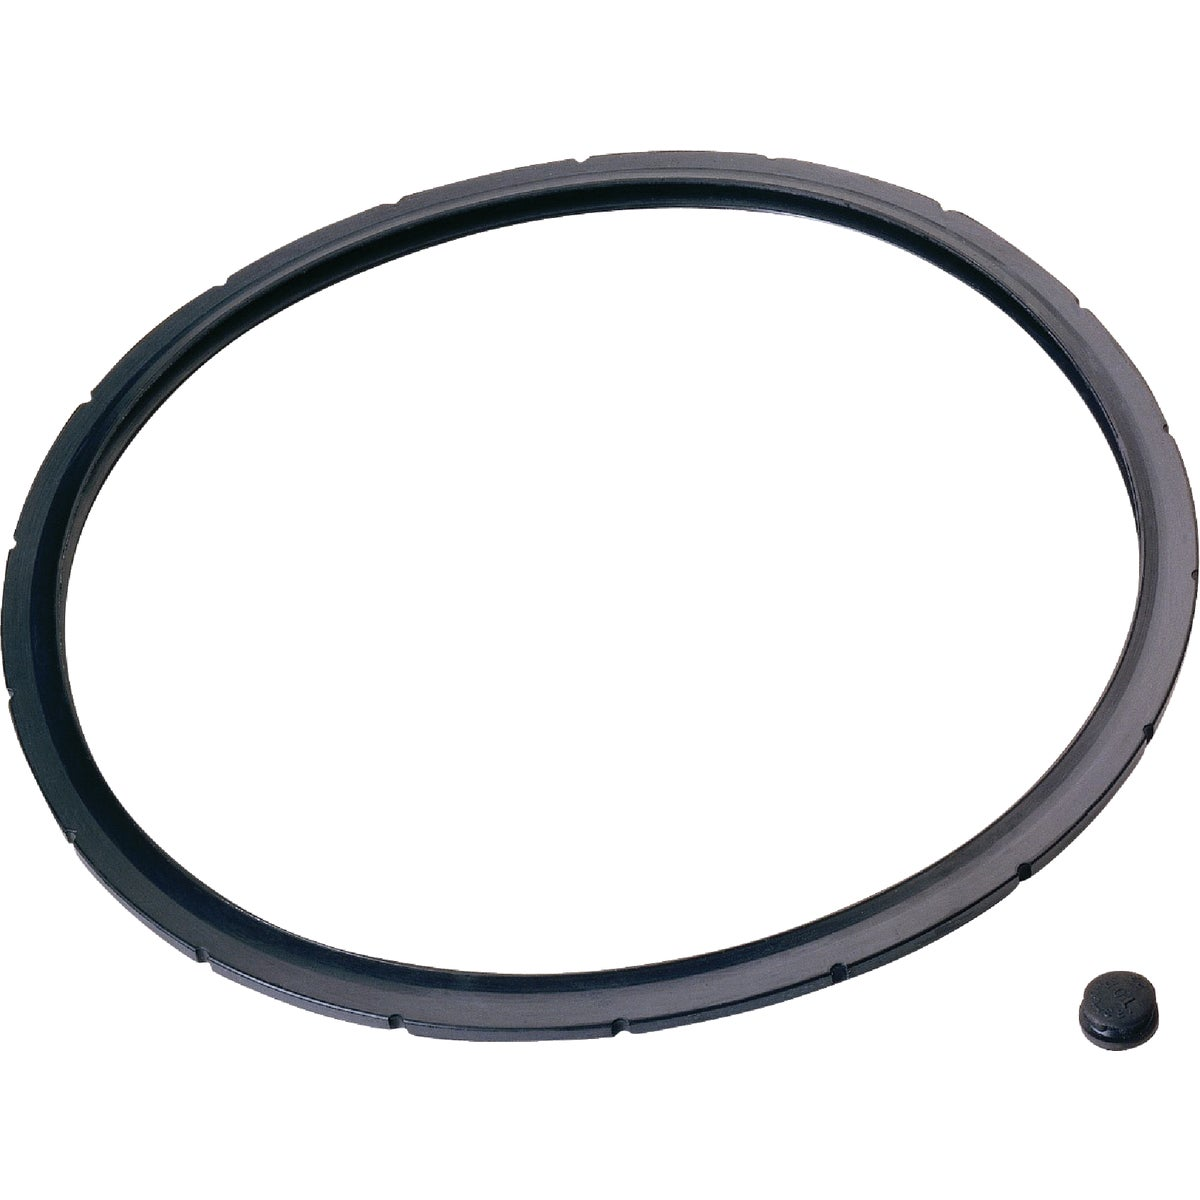 SEALING RING - 09936 by National Presto